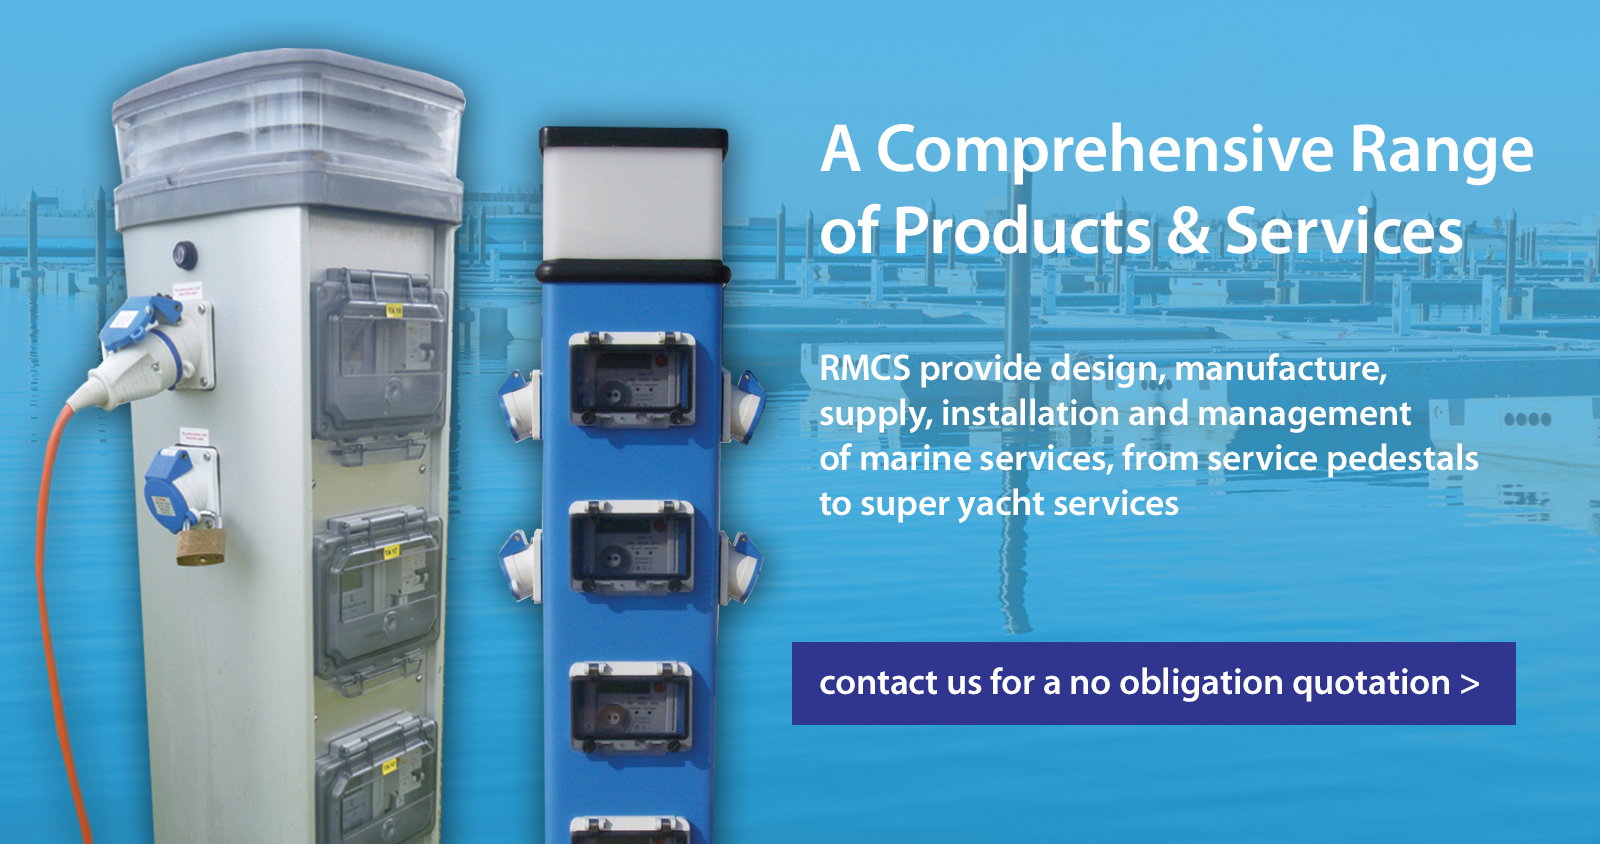 A Comprehensive Range of Products & Services